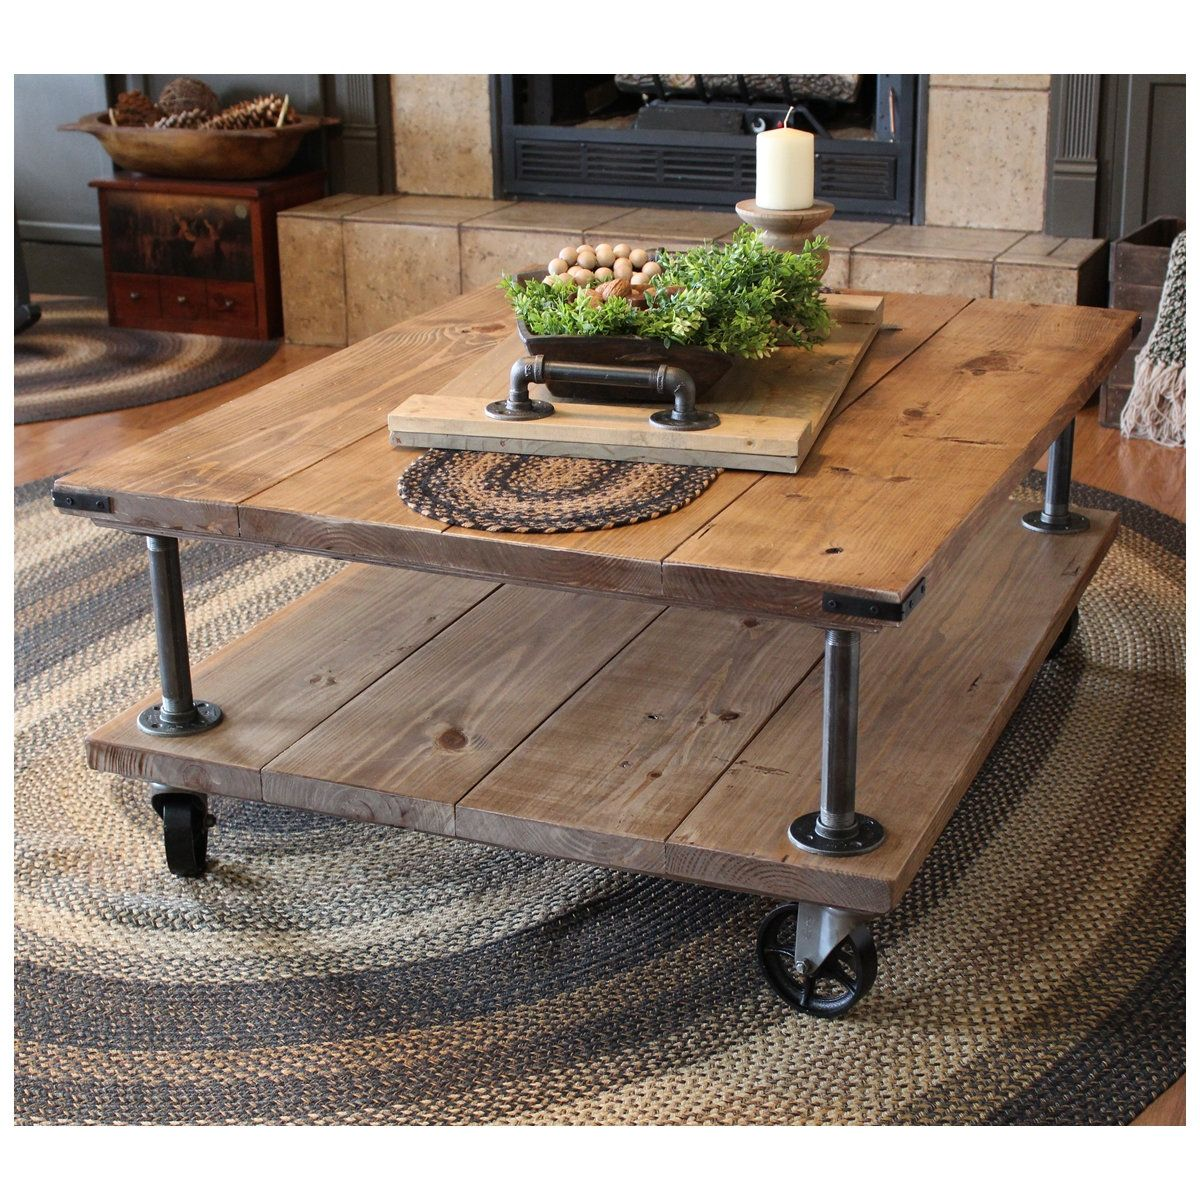 Farmhouse Industrial Coffee Table Industrial Iron and Wood